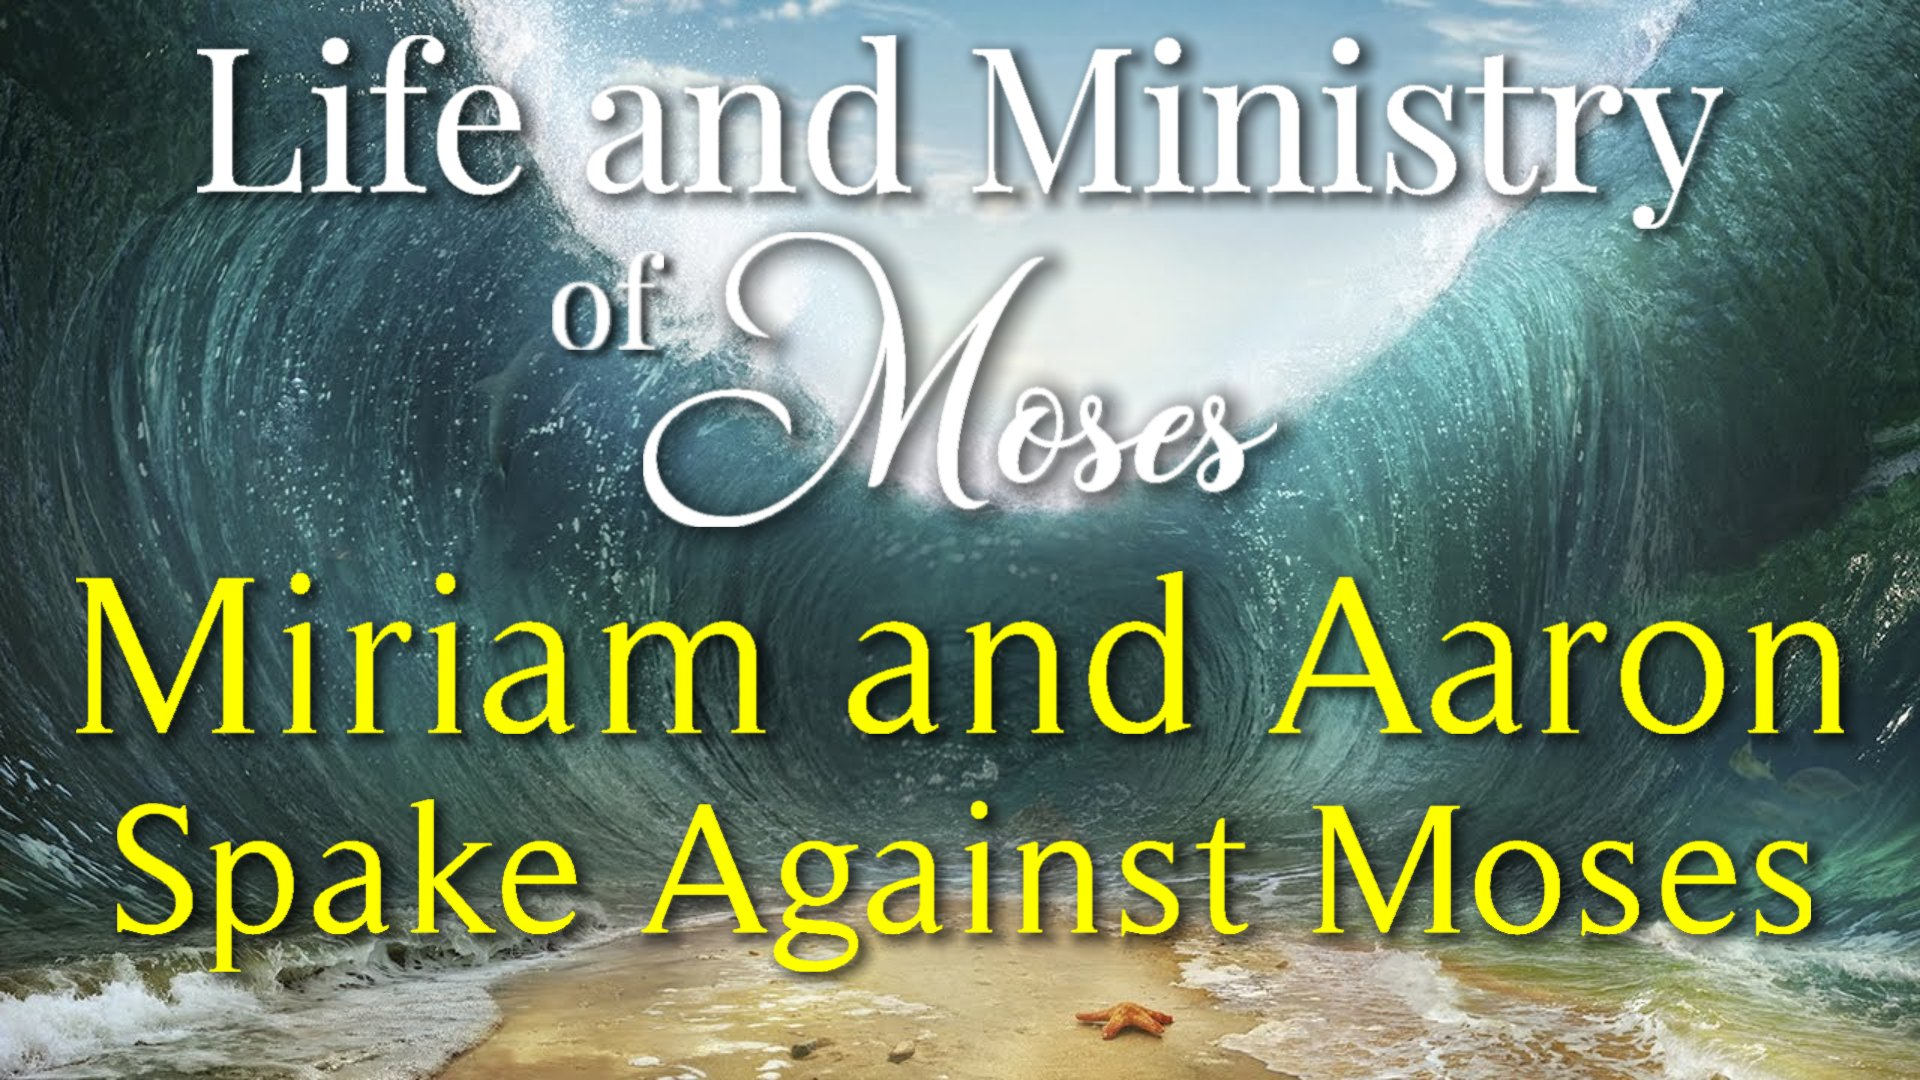 35 Miriam and Aaron Spake Against Moses